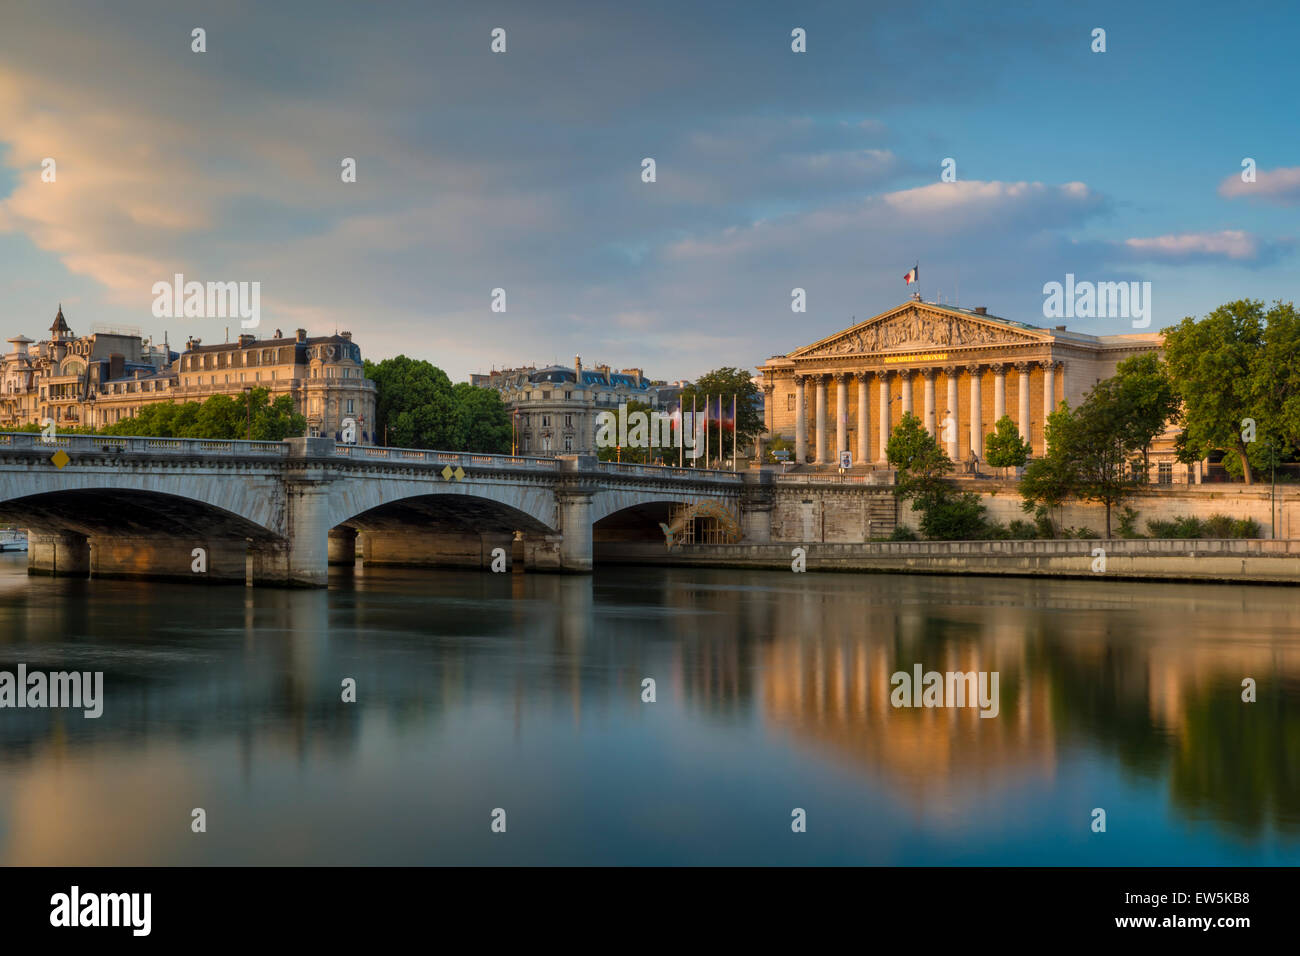 Dawn over River Seine, Pont de la Concorde and Assemblee Nationale, Paris, France - Stock Image